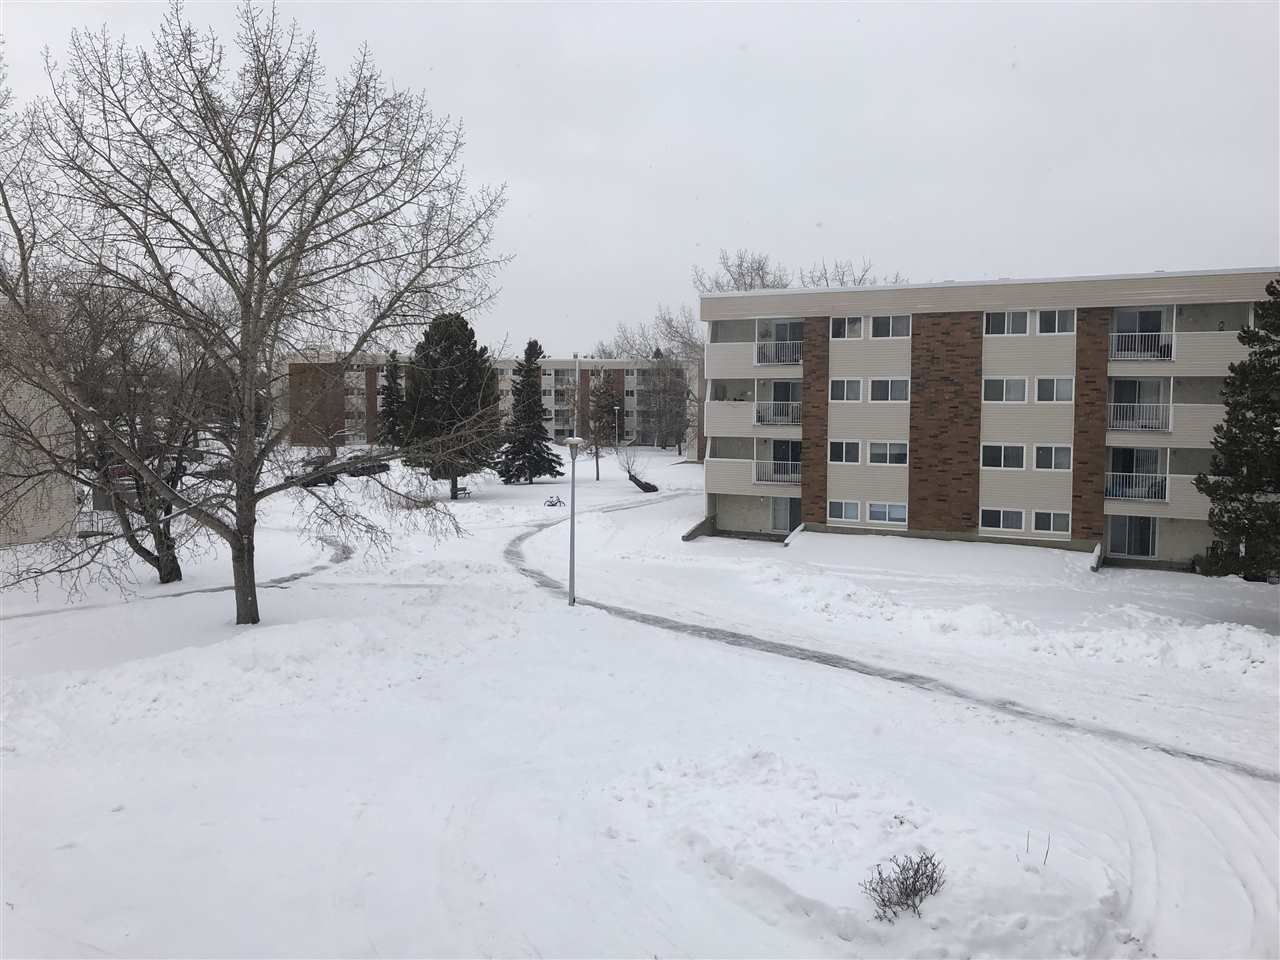 Main Photo: 42 11245 31 Avenue in Edmonton: Zone 16 Condo for sale : MLS®# E4144430